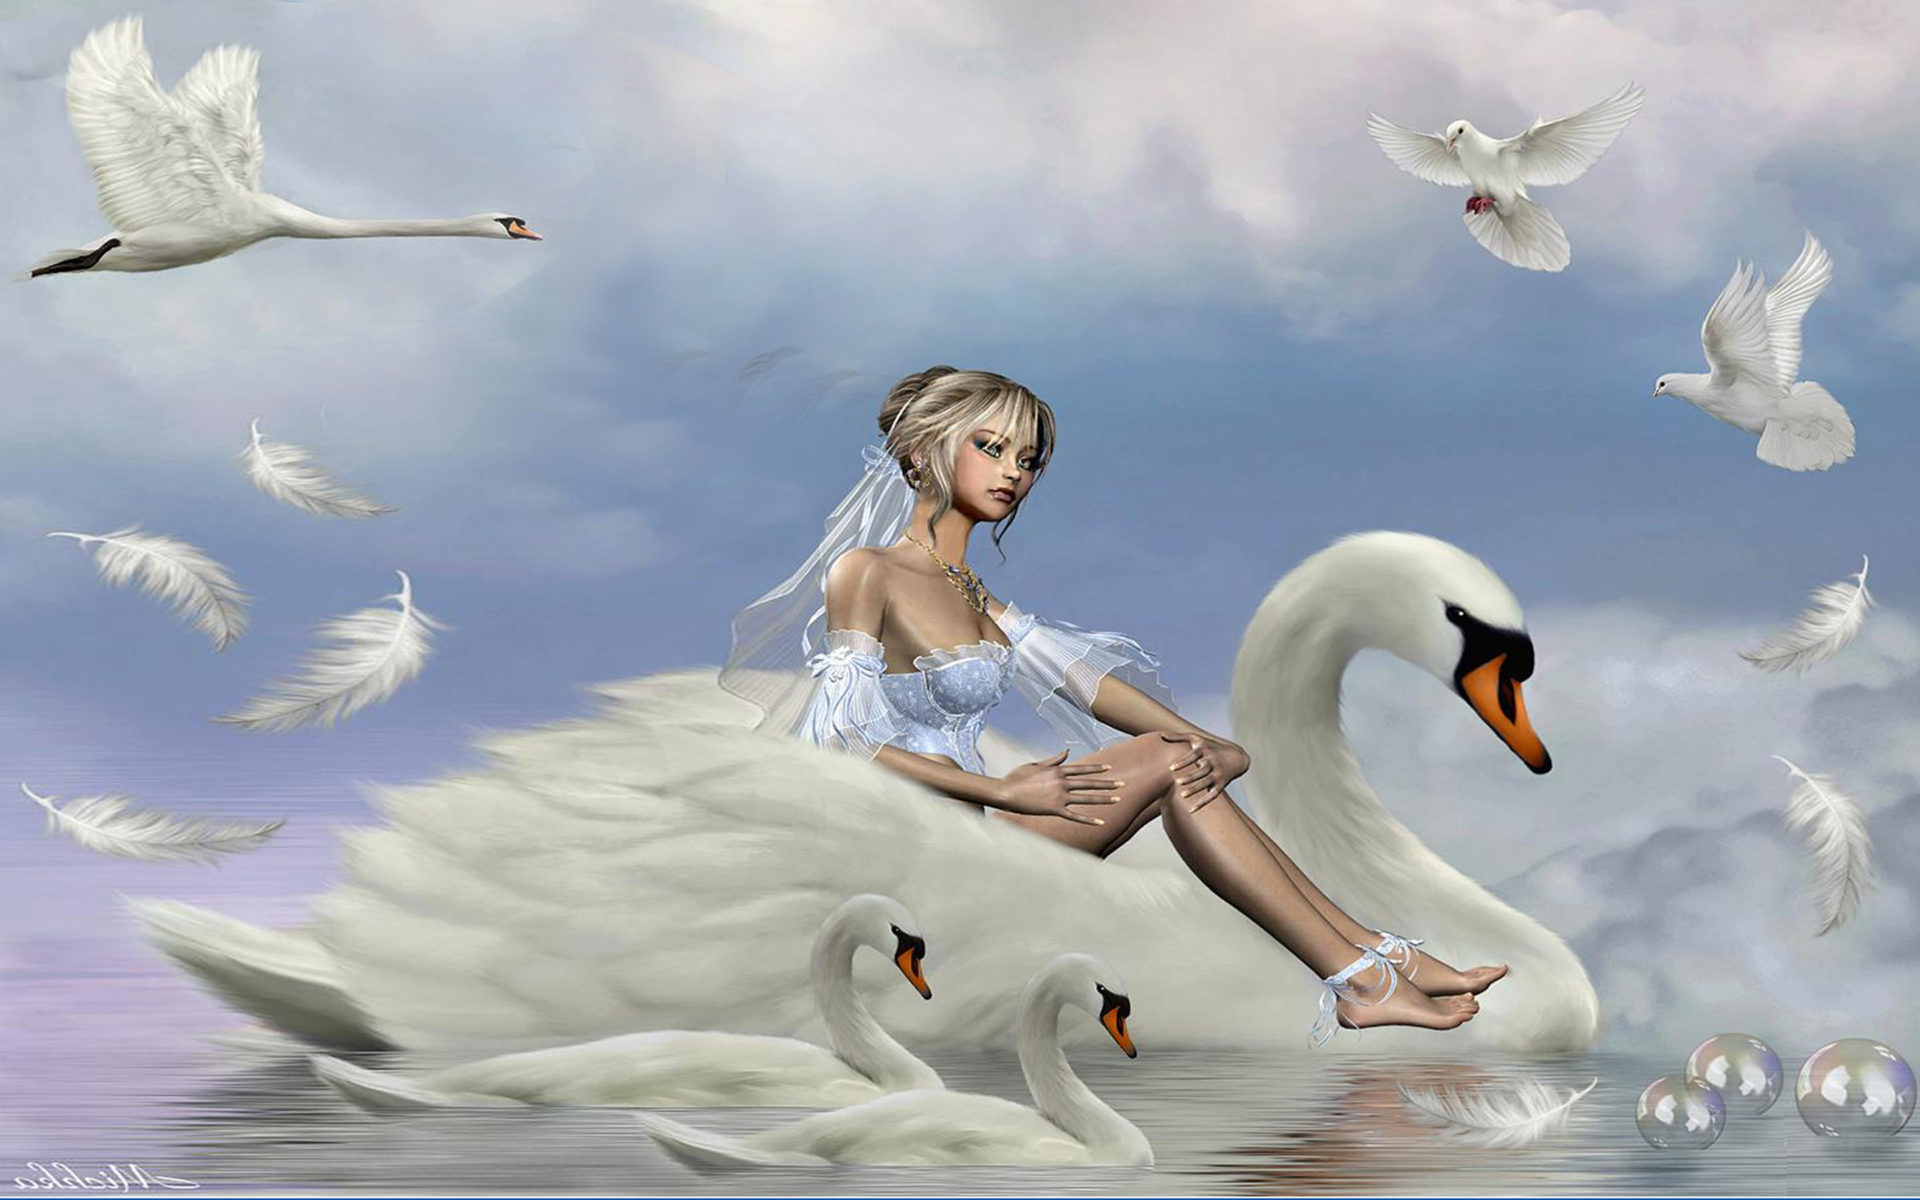 Fall Wallpaper With Owls Girl Riding A Swan Lake Accompanied By Swans And Pigeons